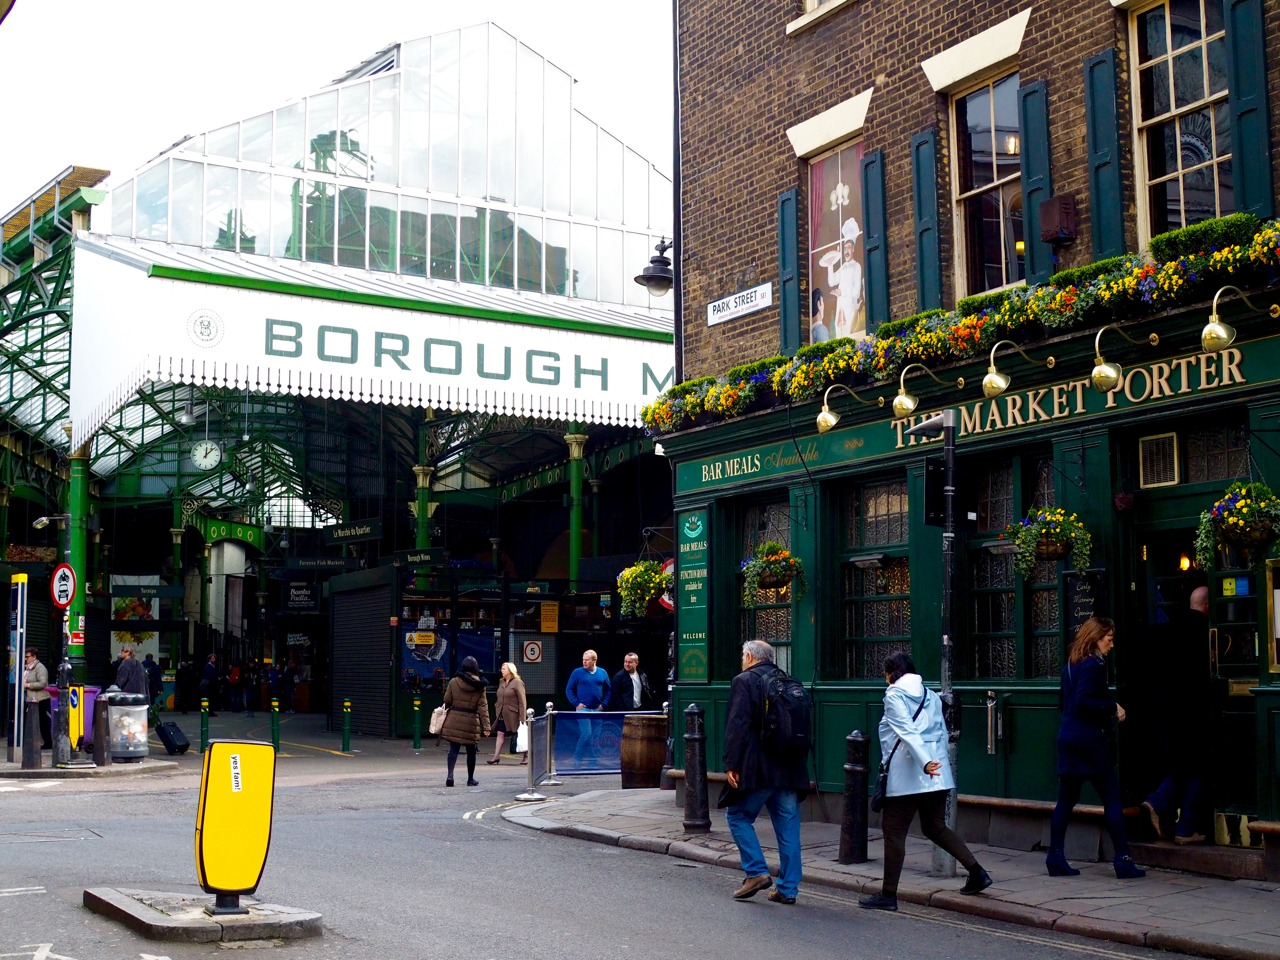 Borough Market In London A 1000 Year Old Love Of Food